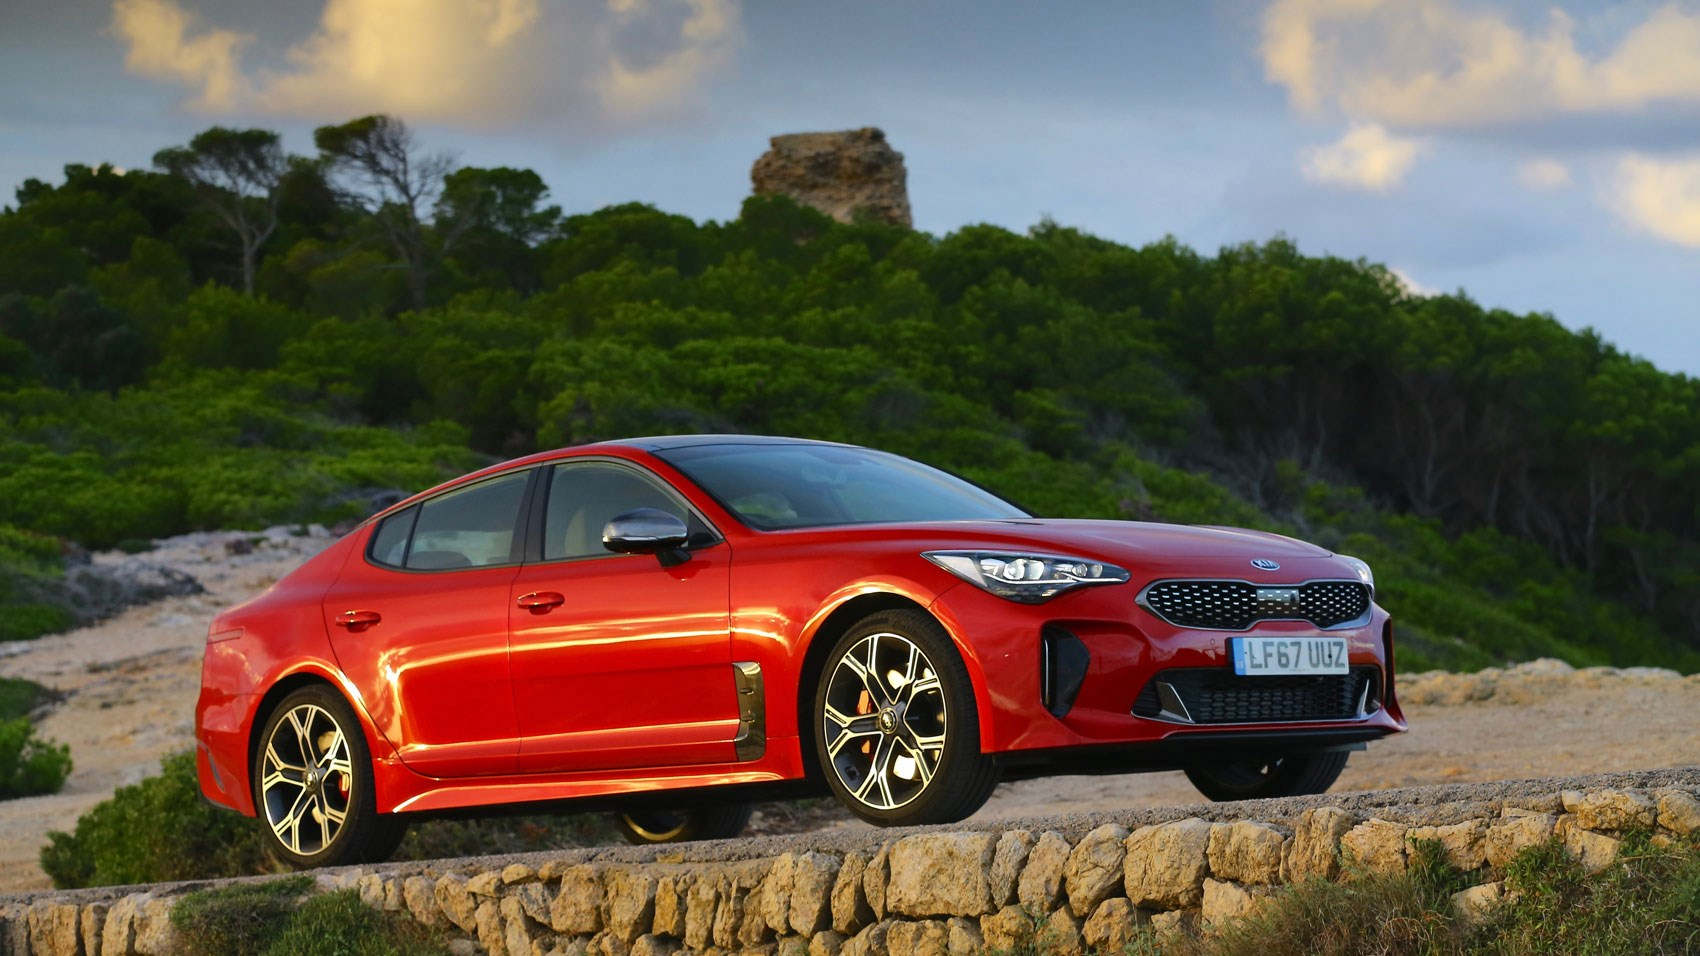 Kia stinger gt 2018 review well worth a look in car for Kia gunther motor co